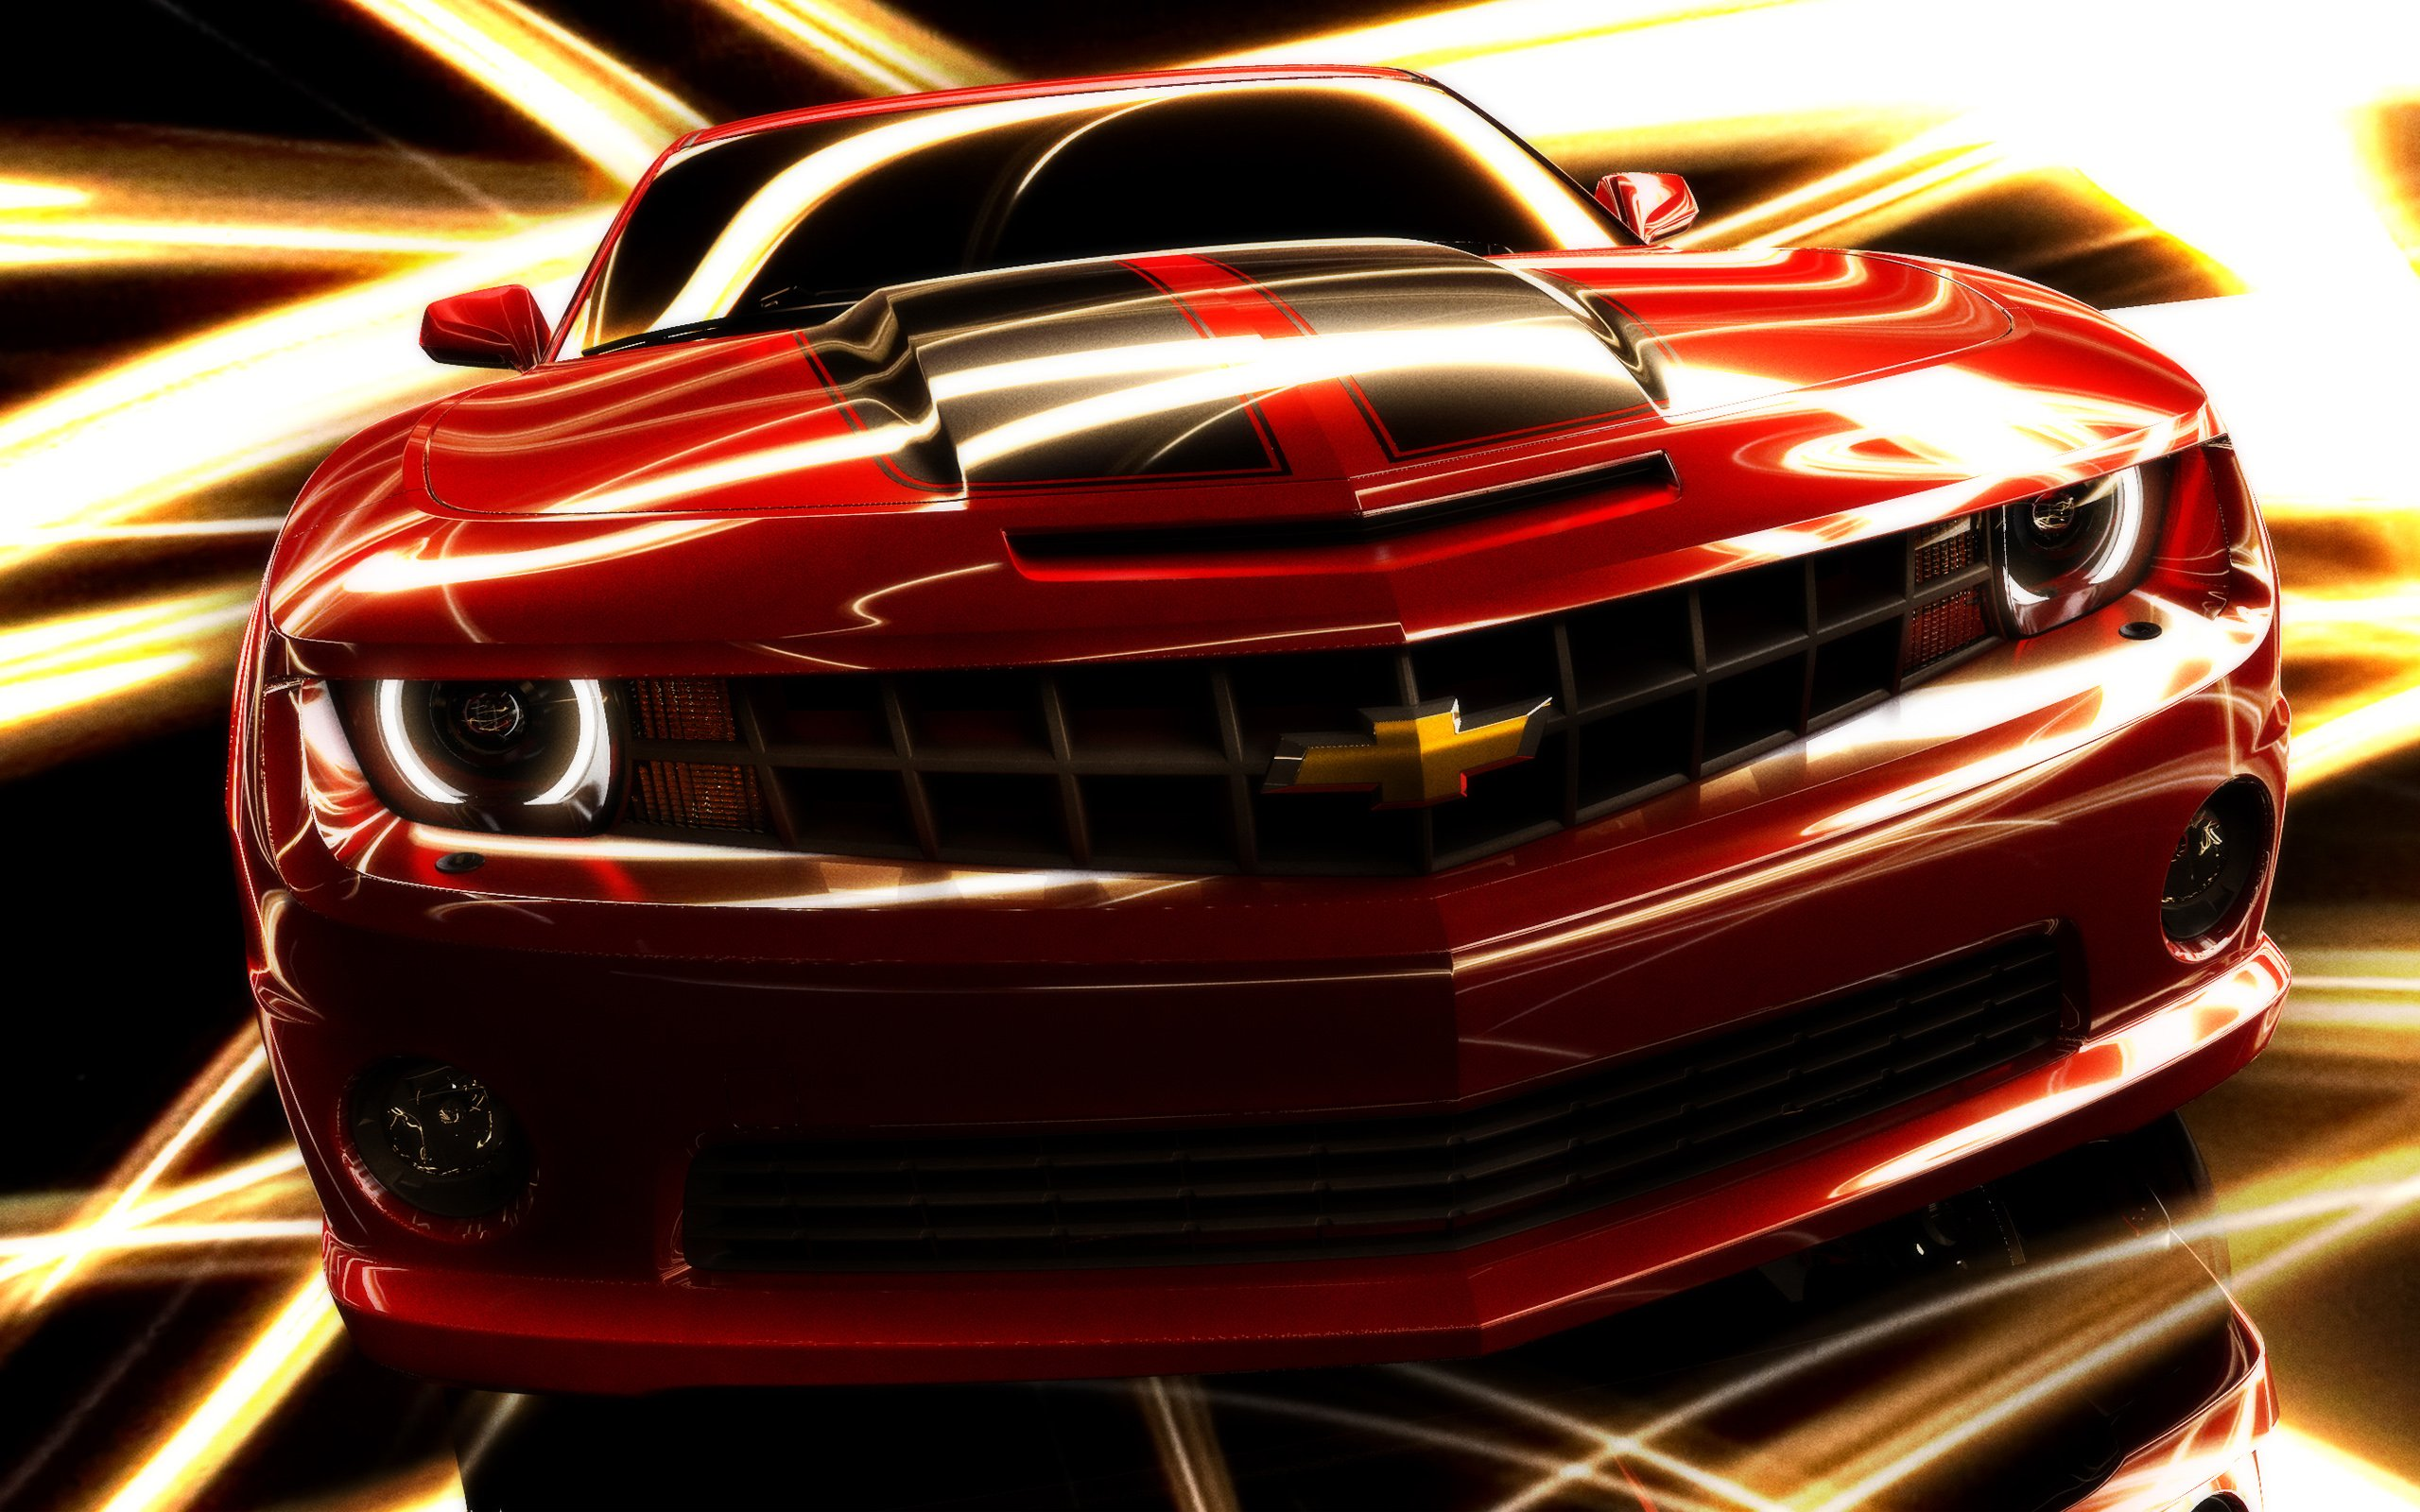 Hd Chevy Logo Wallpapers Wallpapersafari